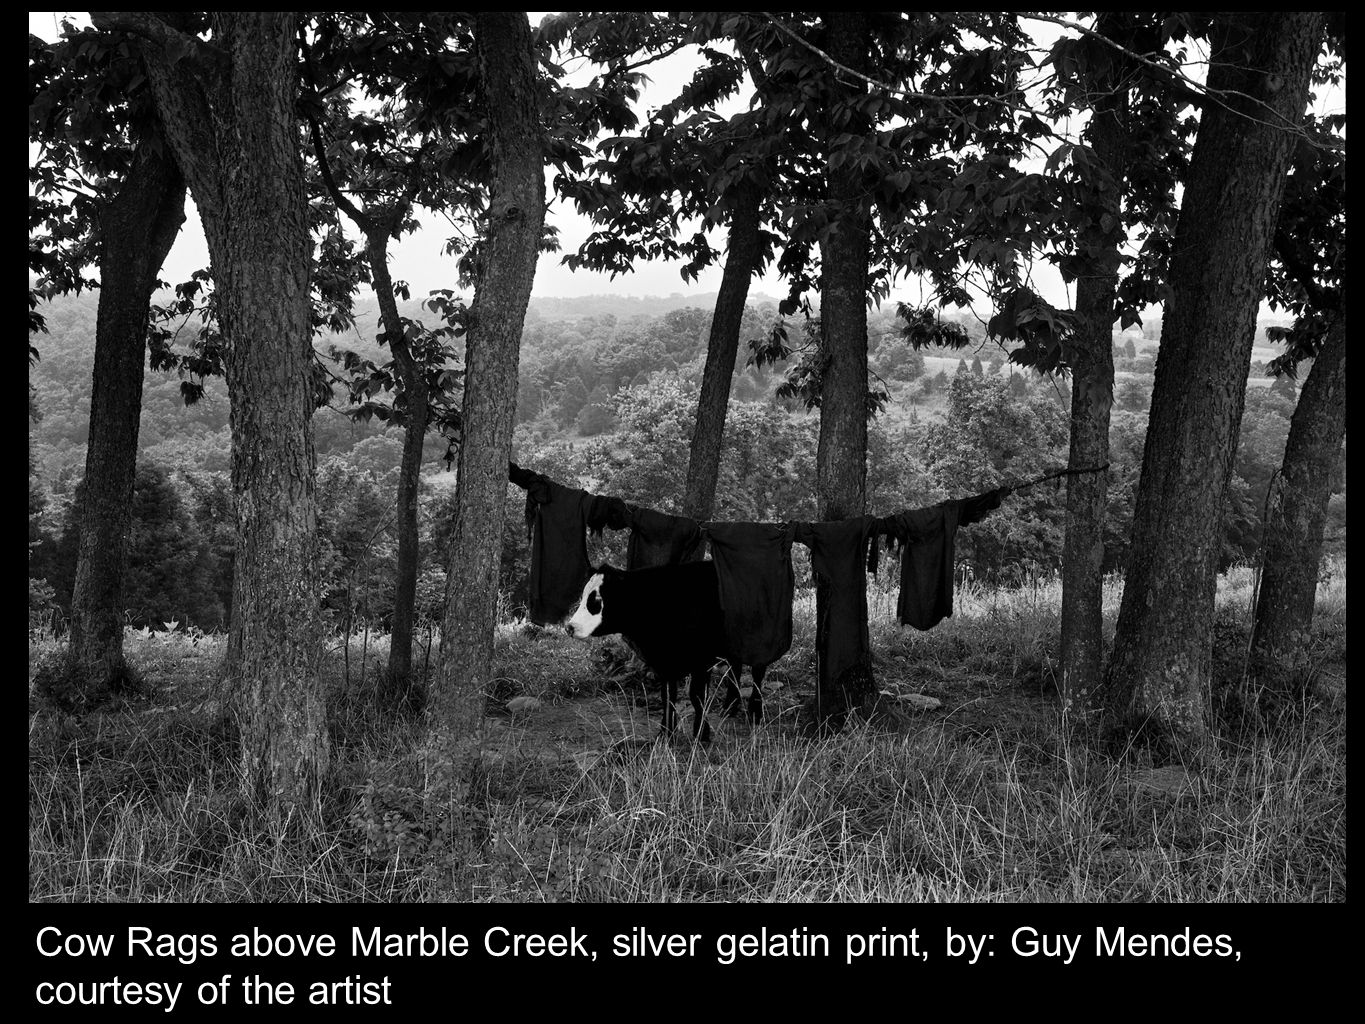 Cow Rags above Marble Creek, silver gelatin print, by: Guy Mendes, courtesy of the artist